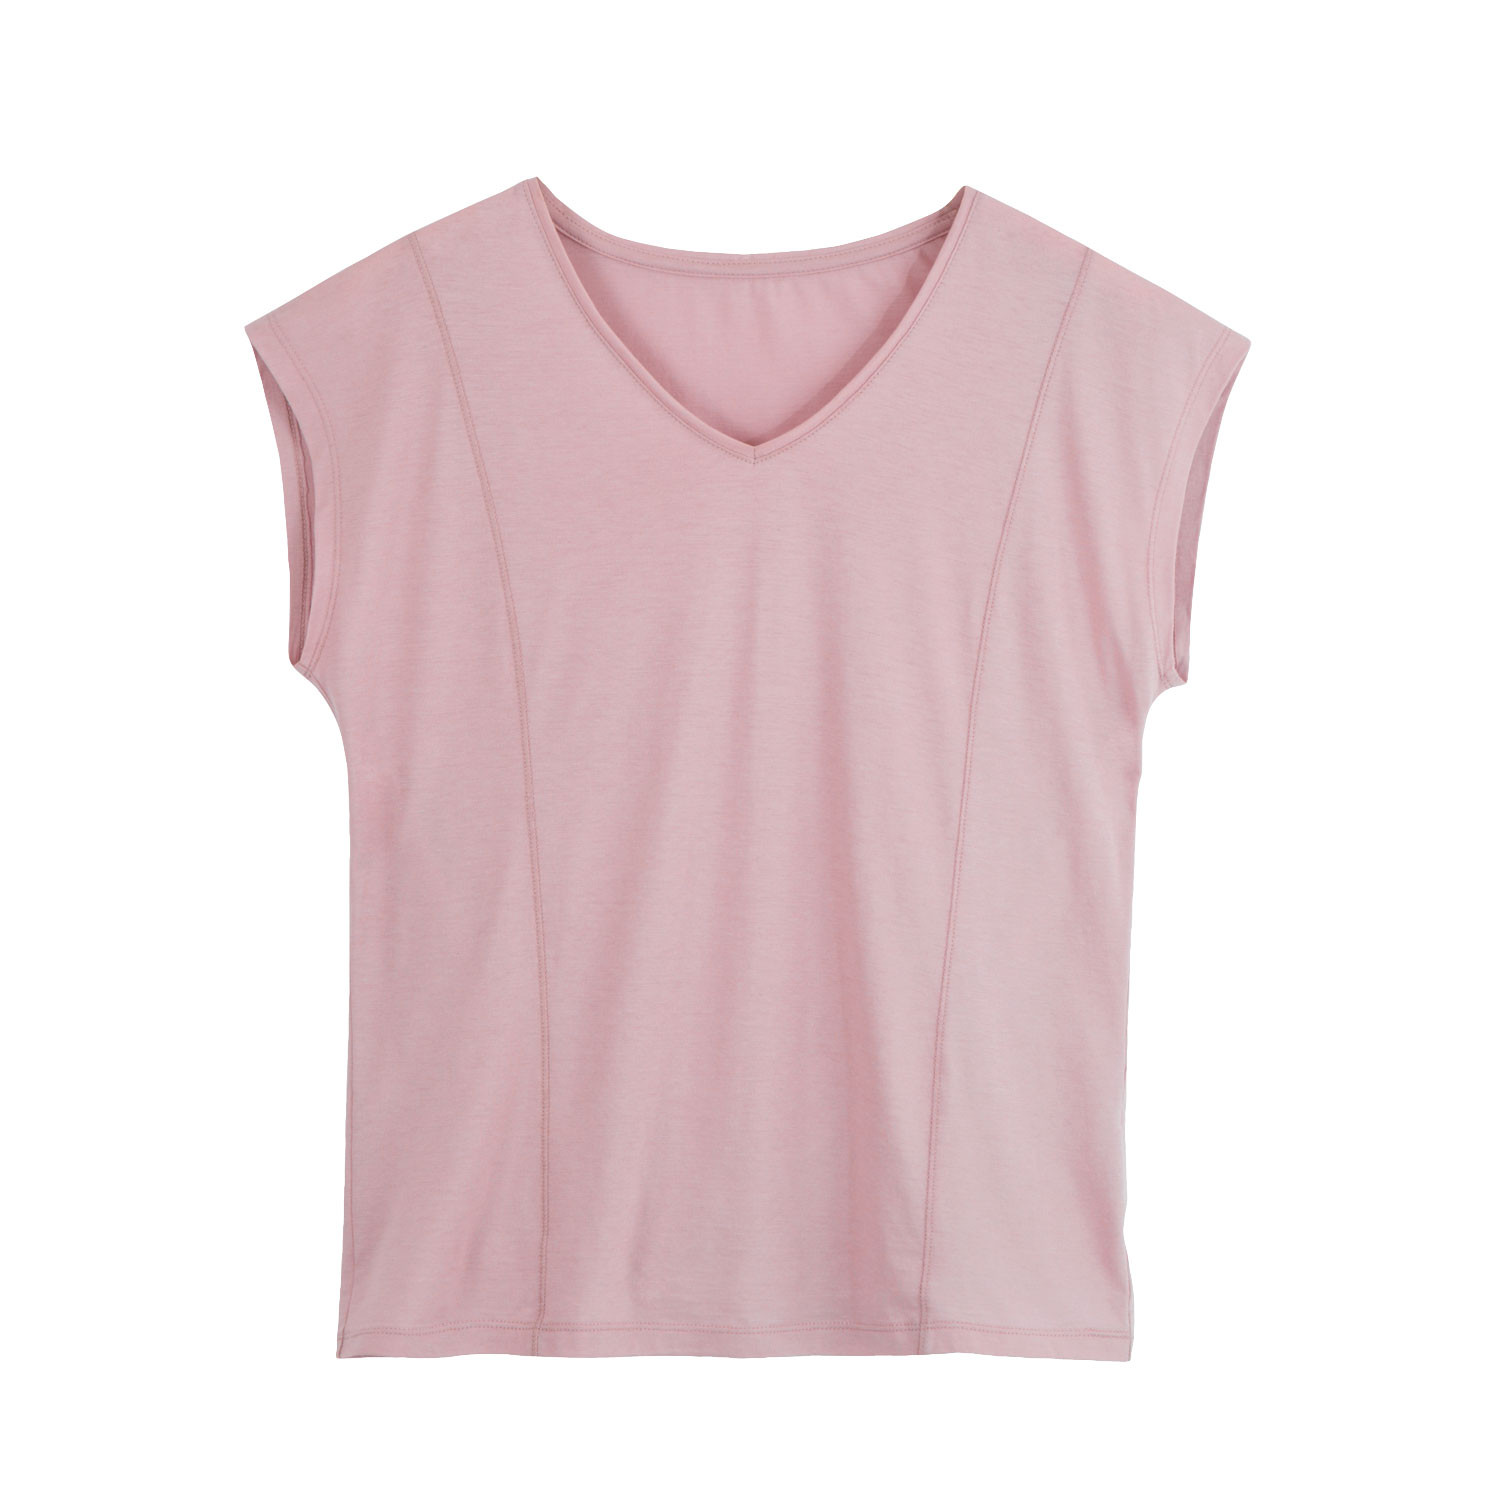 V-neck-Shirt, spring rose